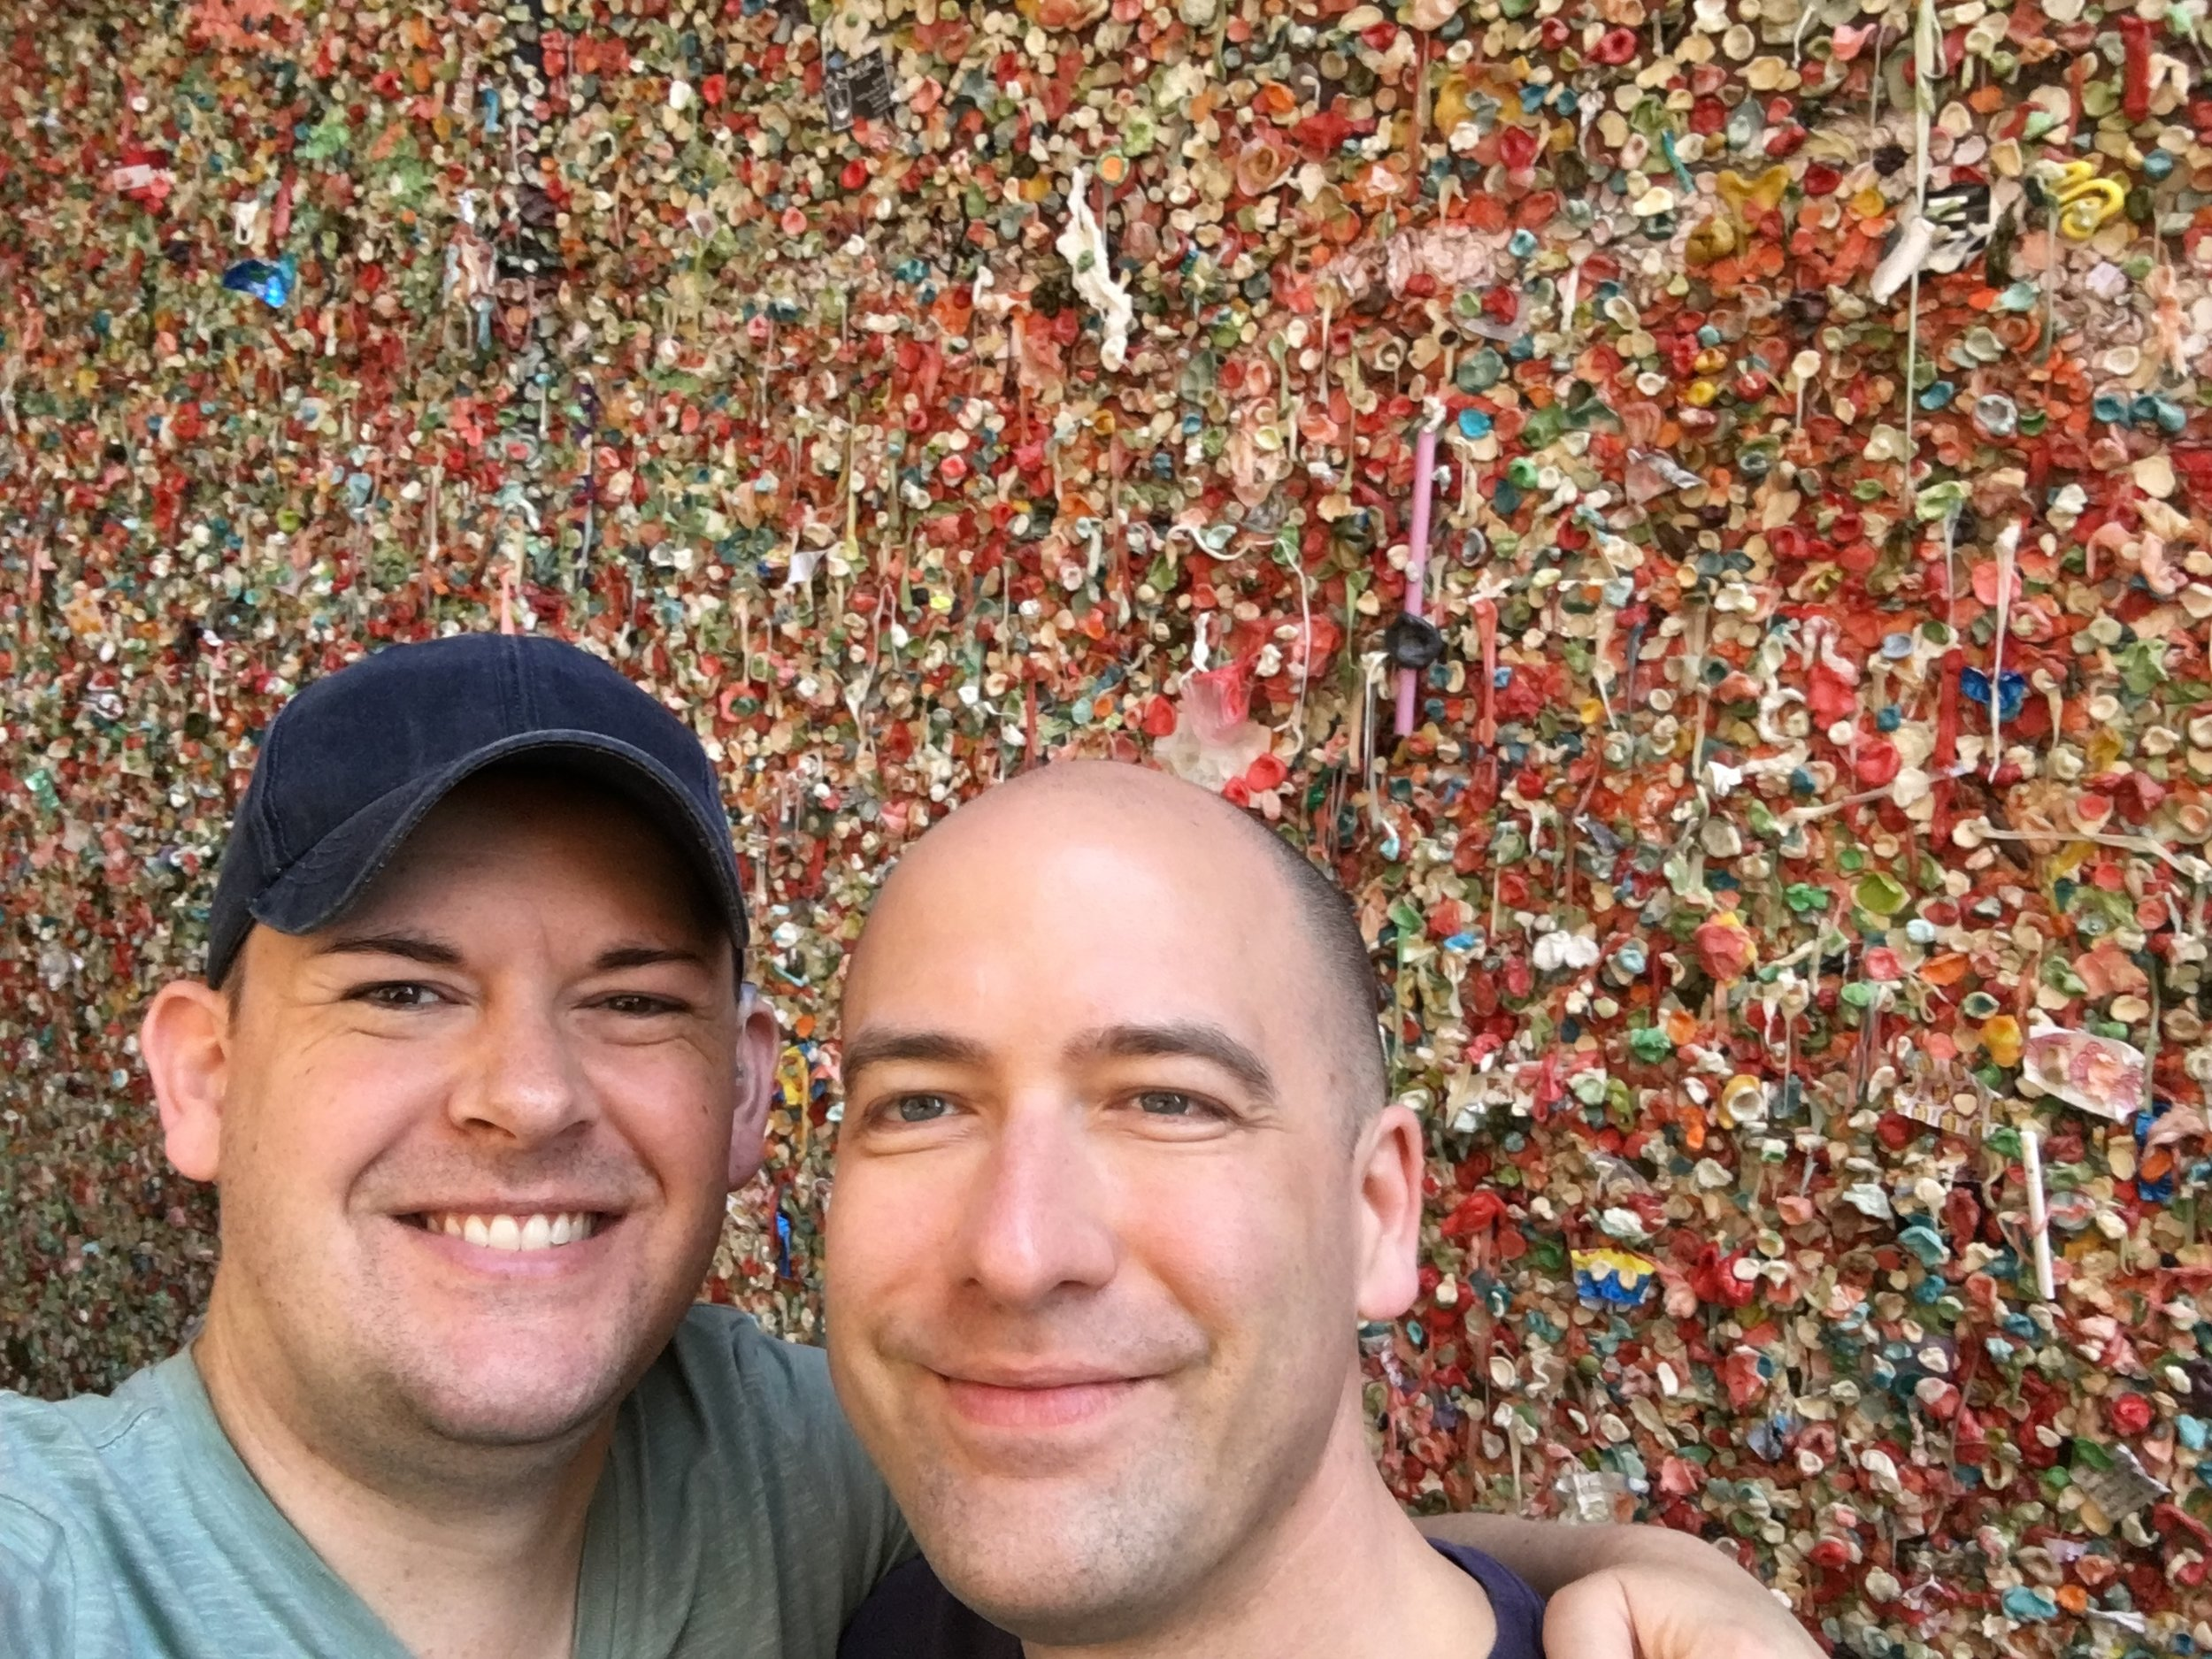 Joshua and Jeffry at the Gum Wall